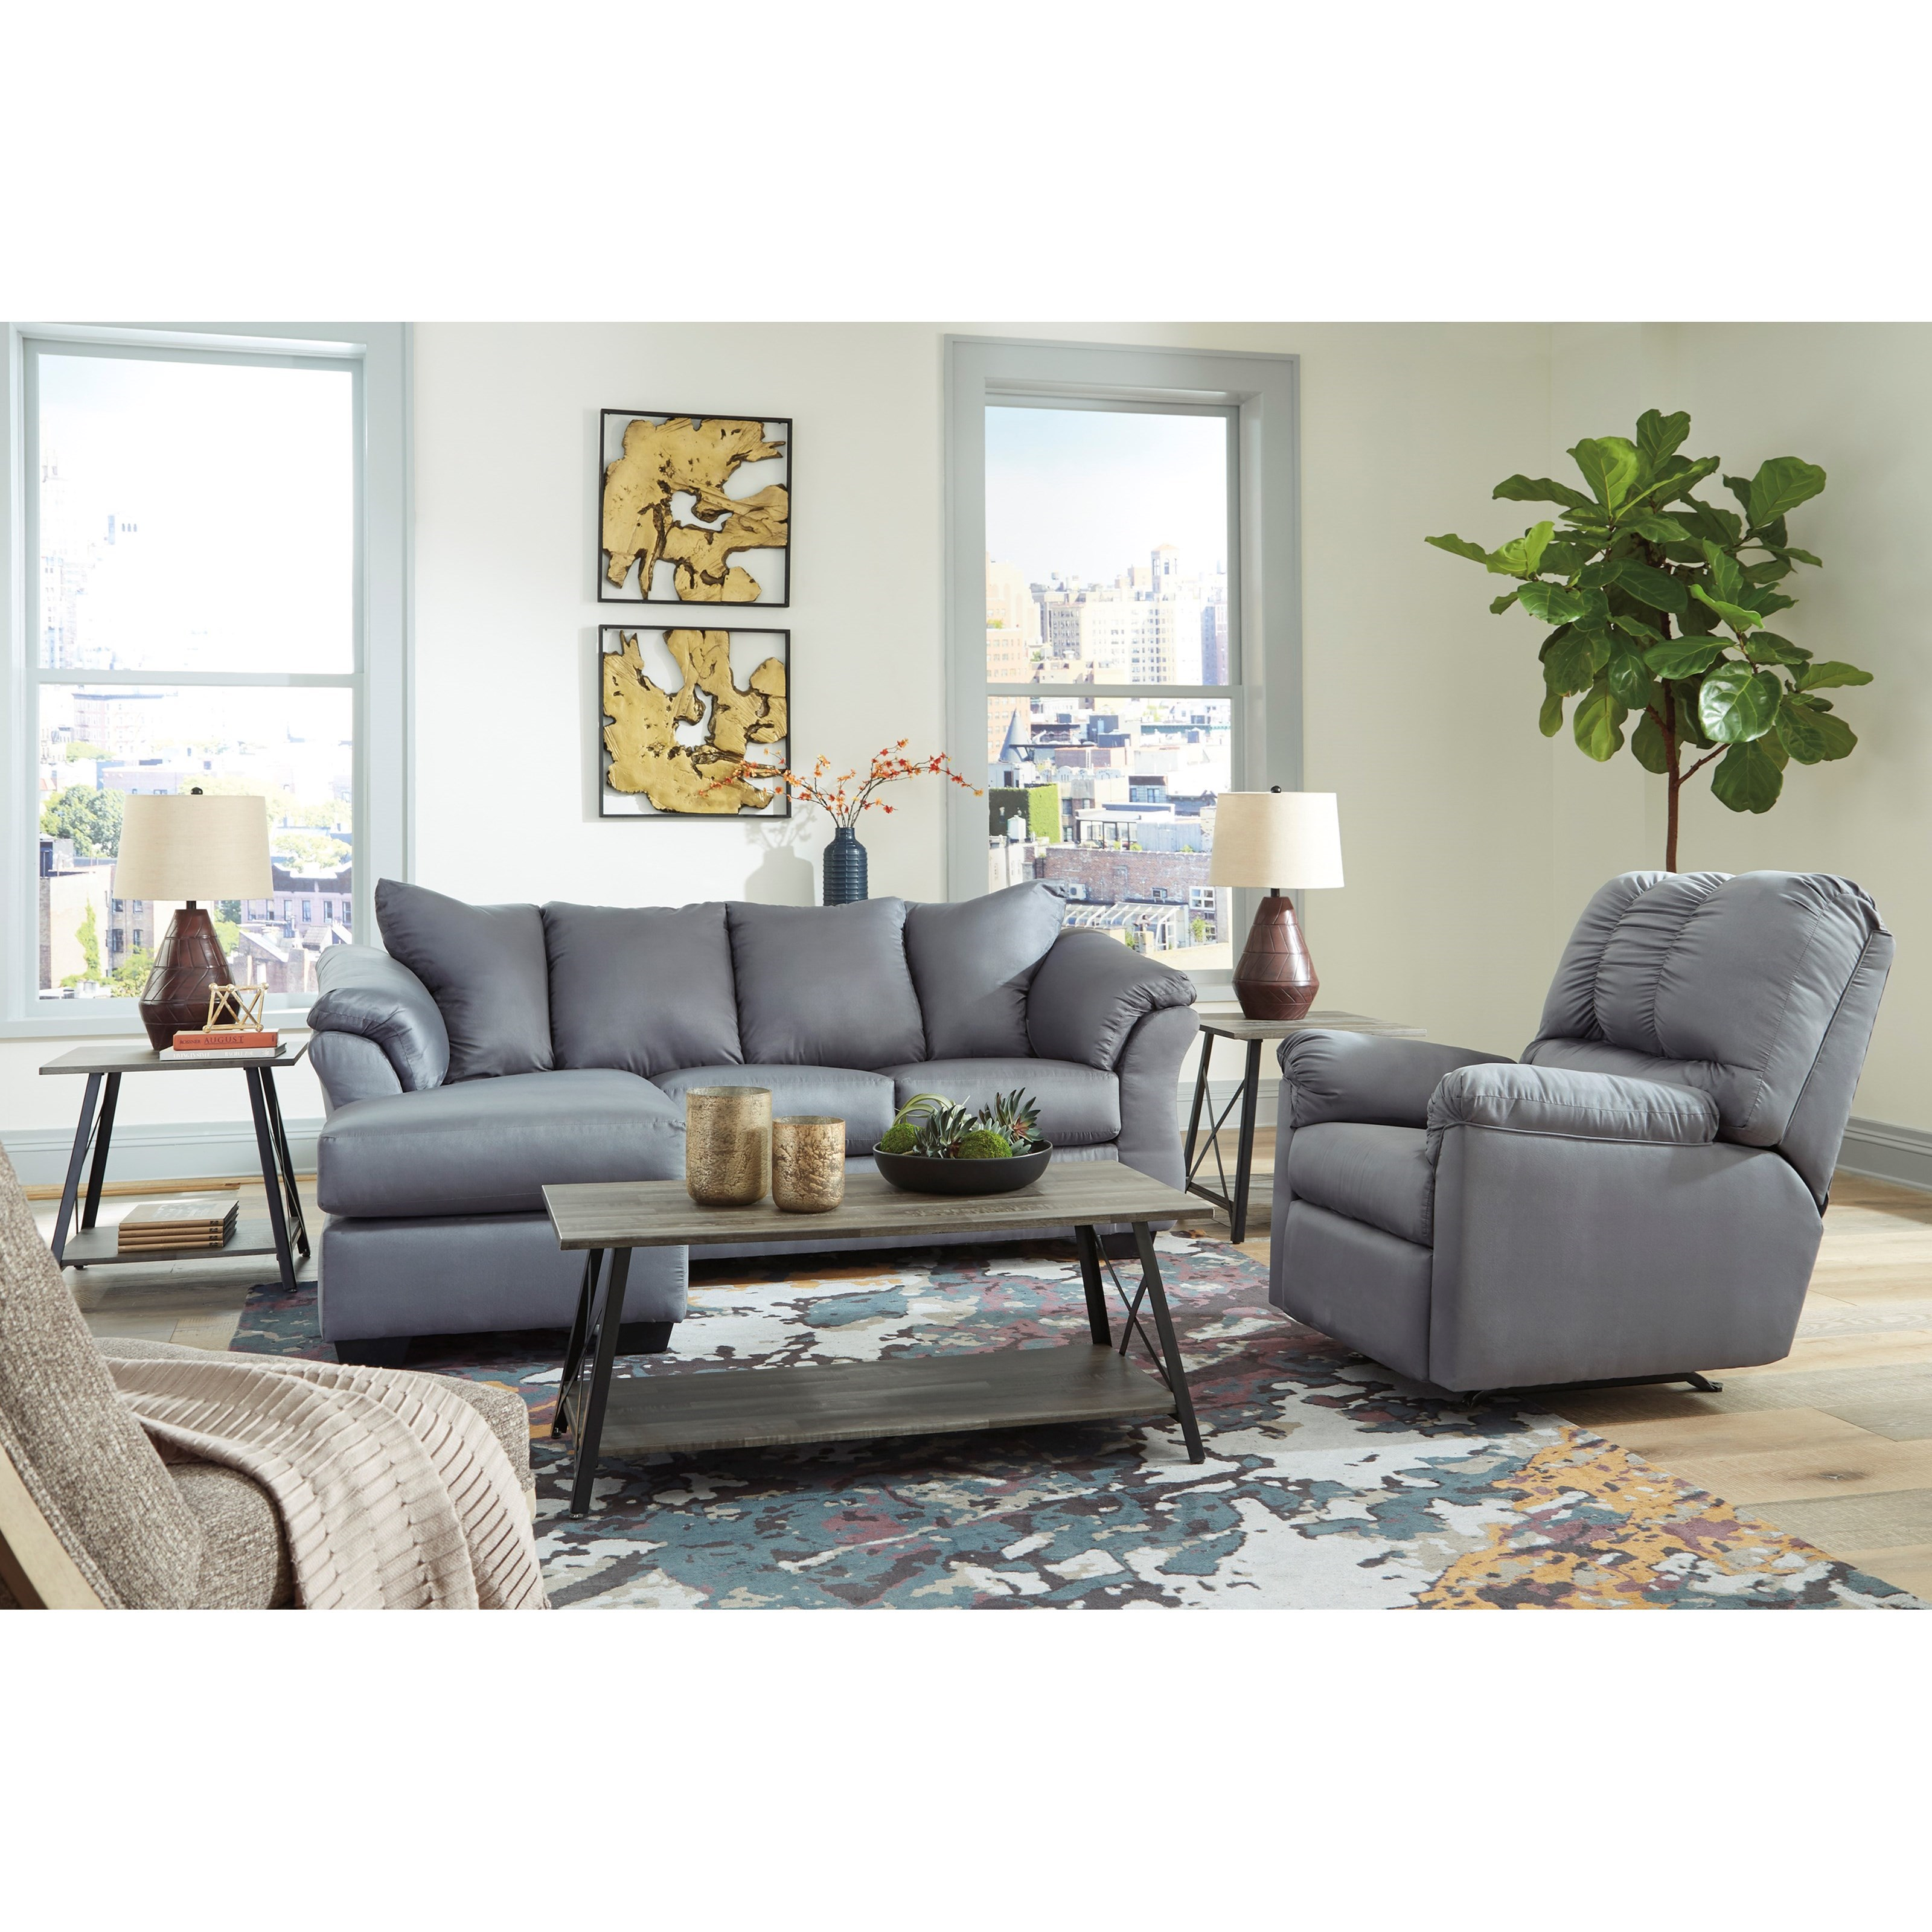 Signature Design By Ashley Darcy Steel Contemporary Sofa Chaise With Flared Back